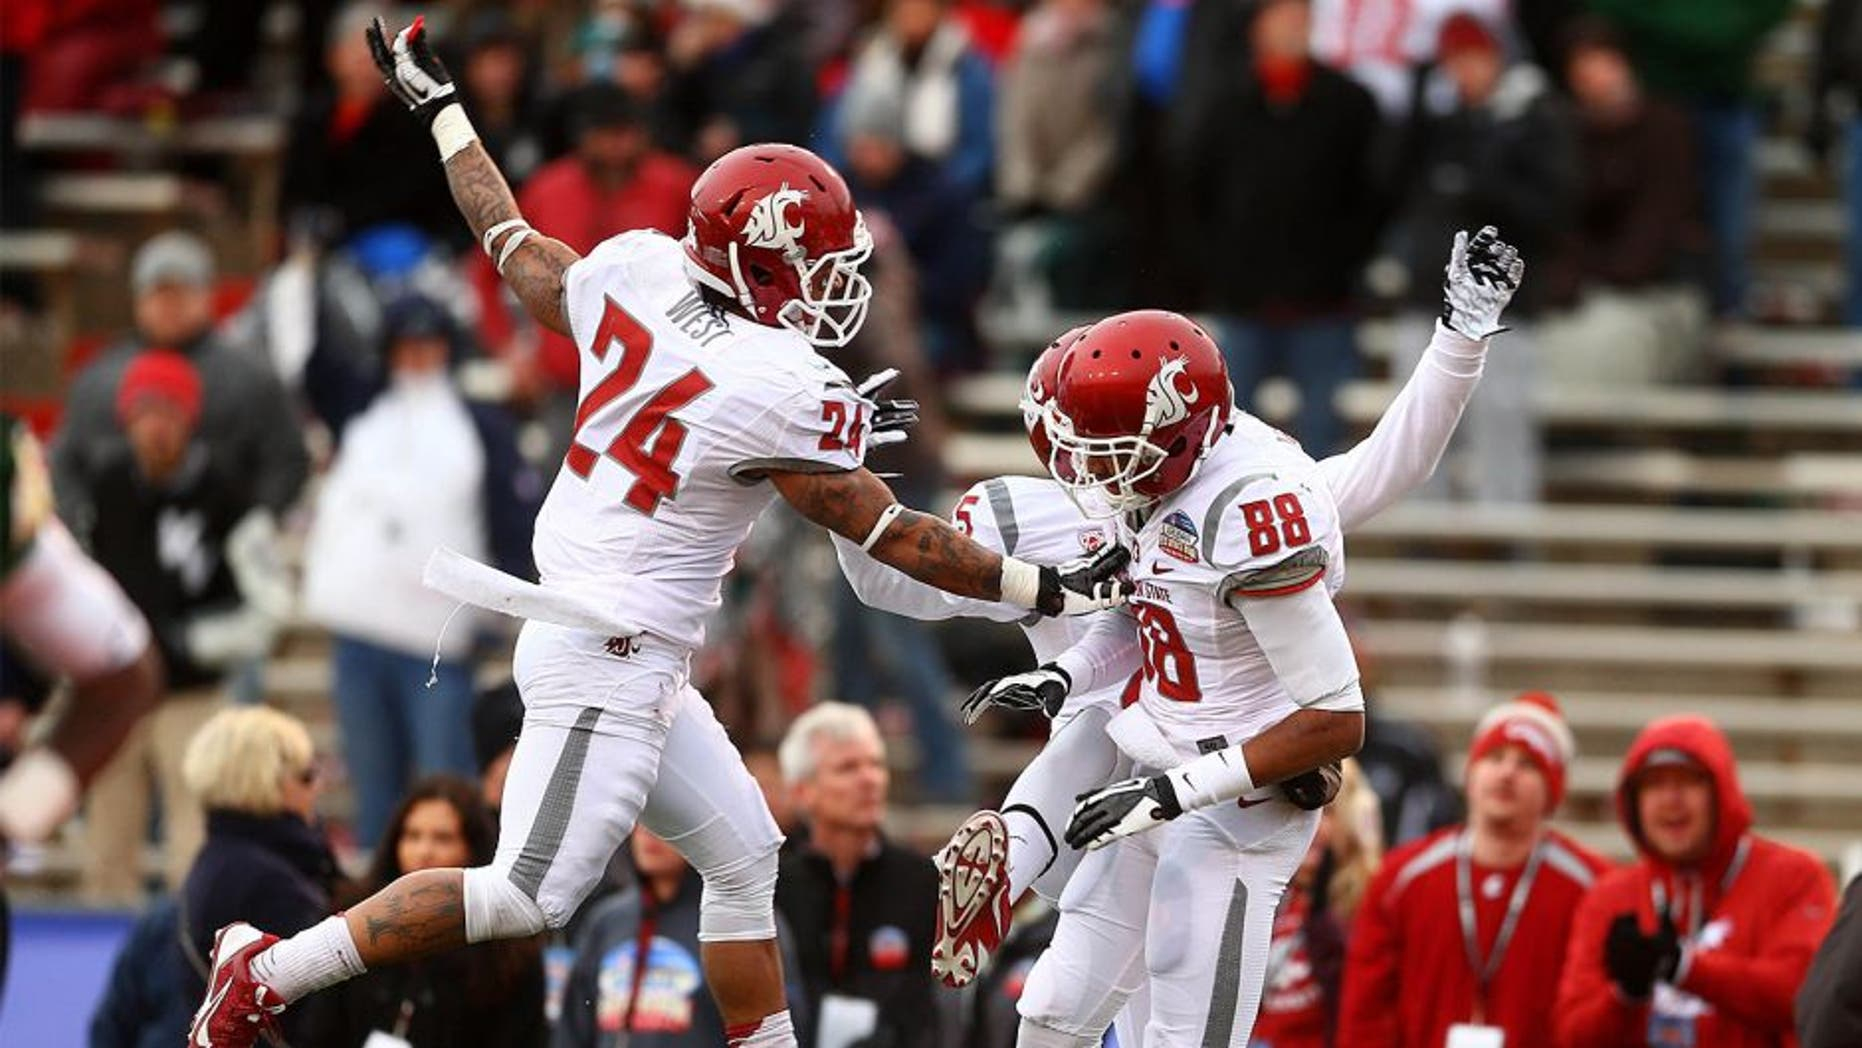 Dec 21, 2013; Albuquerque, NM, USA; Washington State Cougars wide receiver Isiah Myers (88) is congratulated by teammate Theron West (24) after a second half touchdown against the Colorado State Rams during the Gildan New Mexico Bowl at University Stadium. The Rams defeated the Cougars 48-45. Mandatory Credit: Mark J. Rebilas-USA TODAY Sports